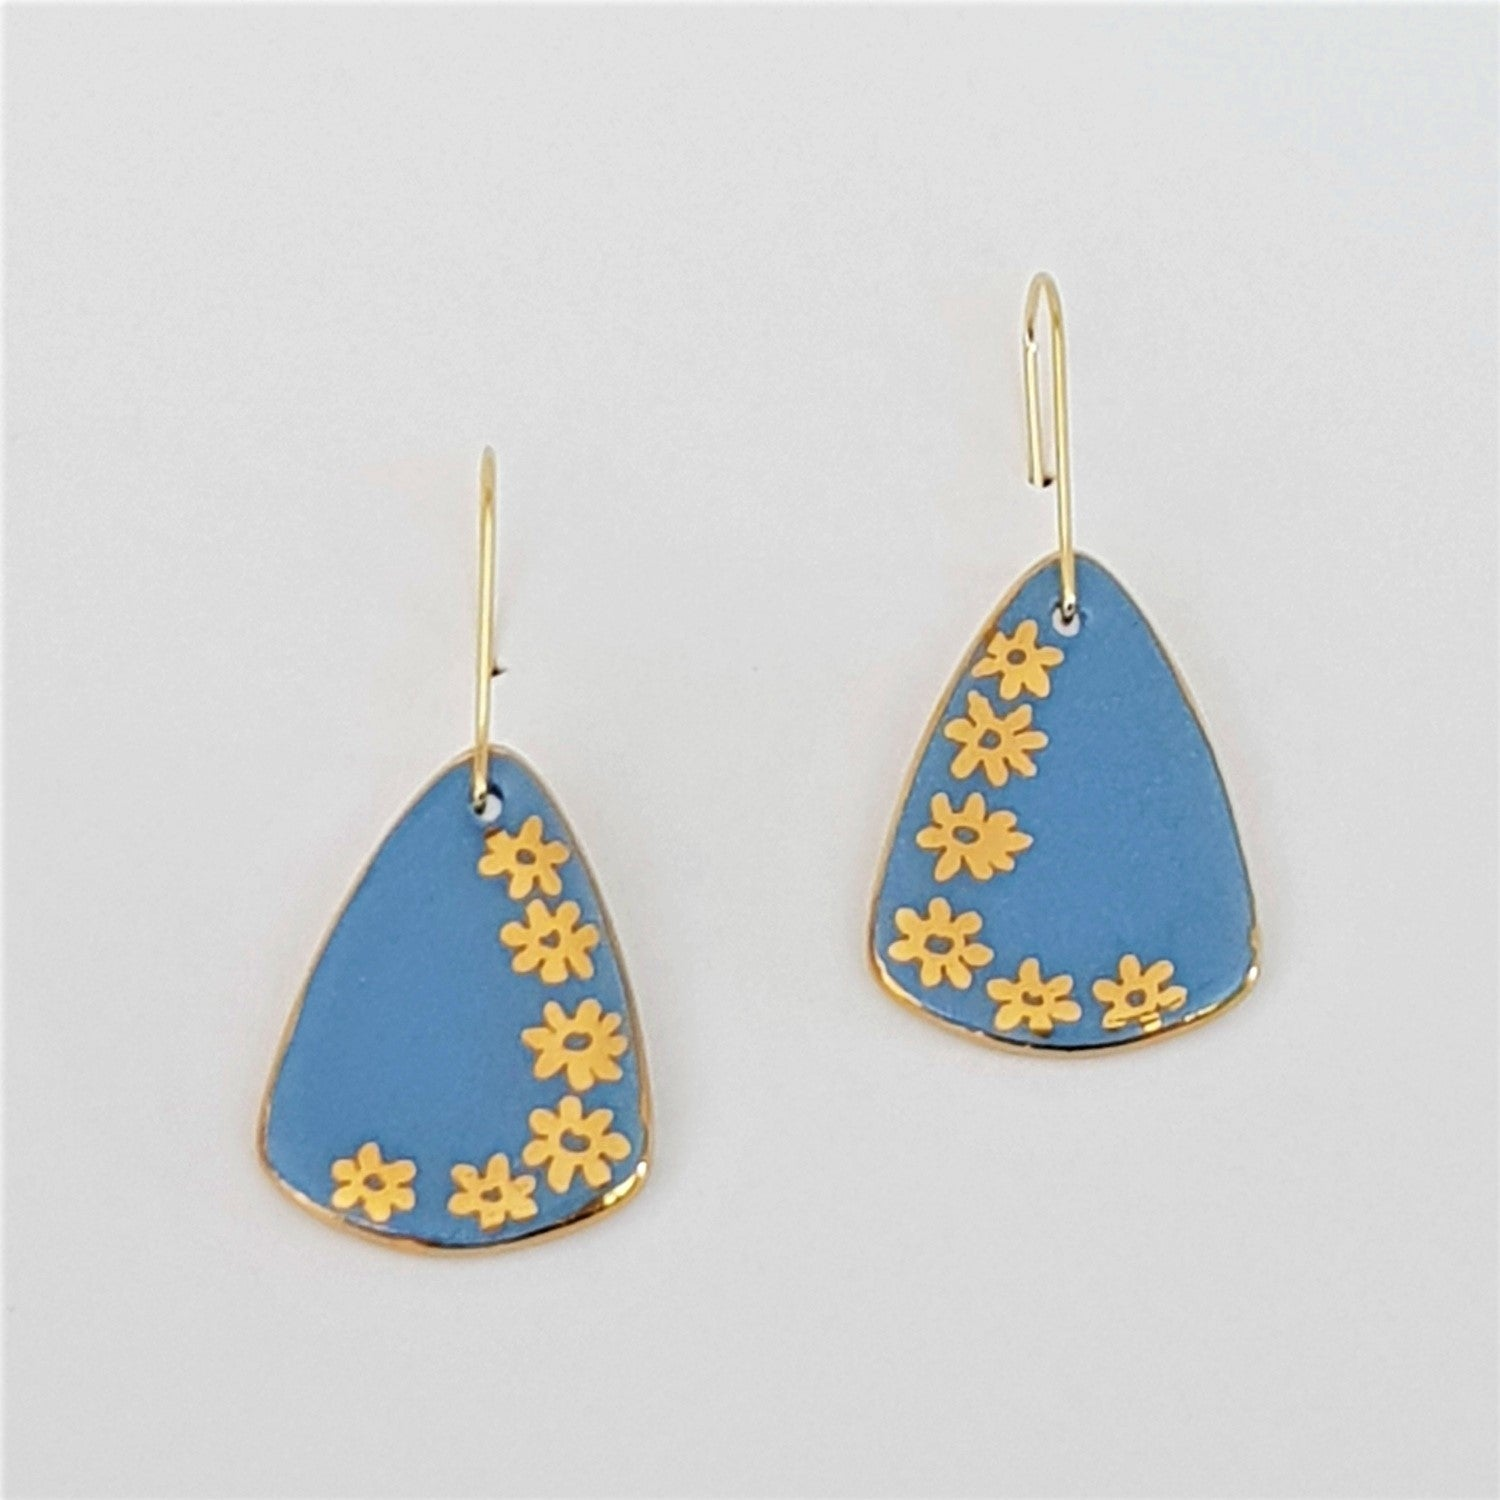 powder blue mini dangle earrings with gold daisies